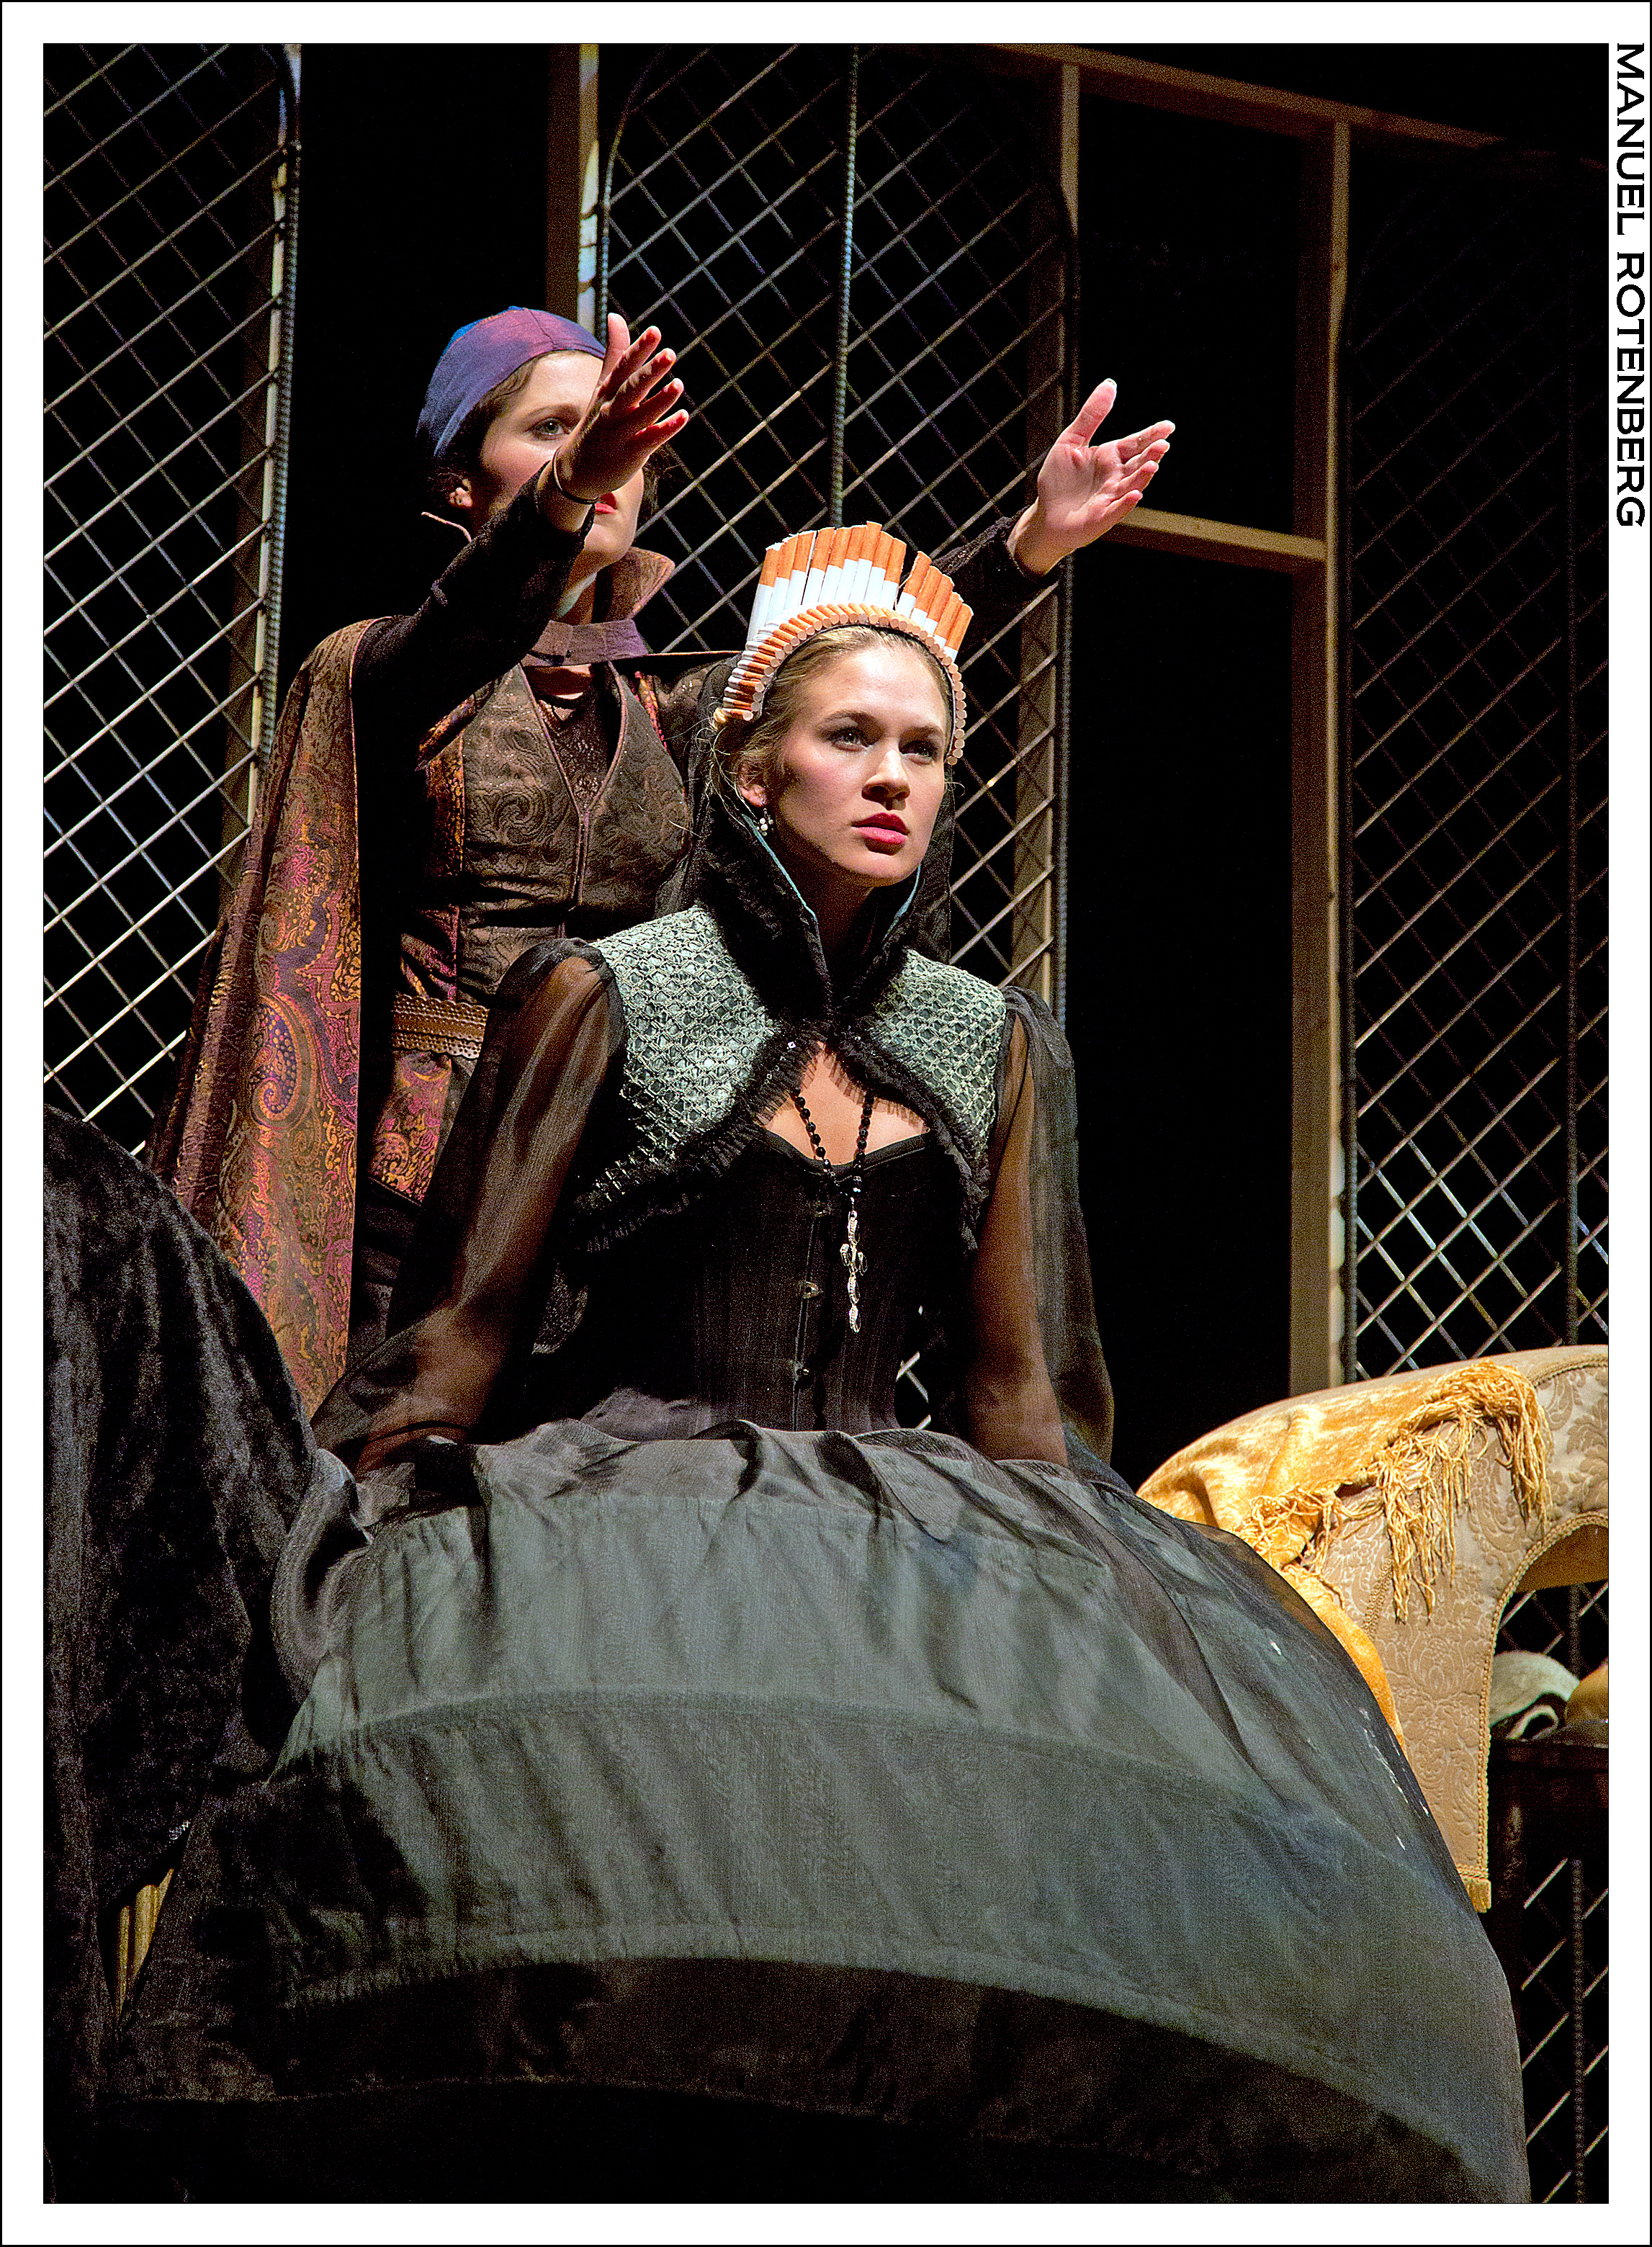 Nostradamus (Hannah Corrigan) shows Queen Catherine of France (Sarah Halford) visions of Mary Queen of Scots.